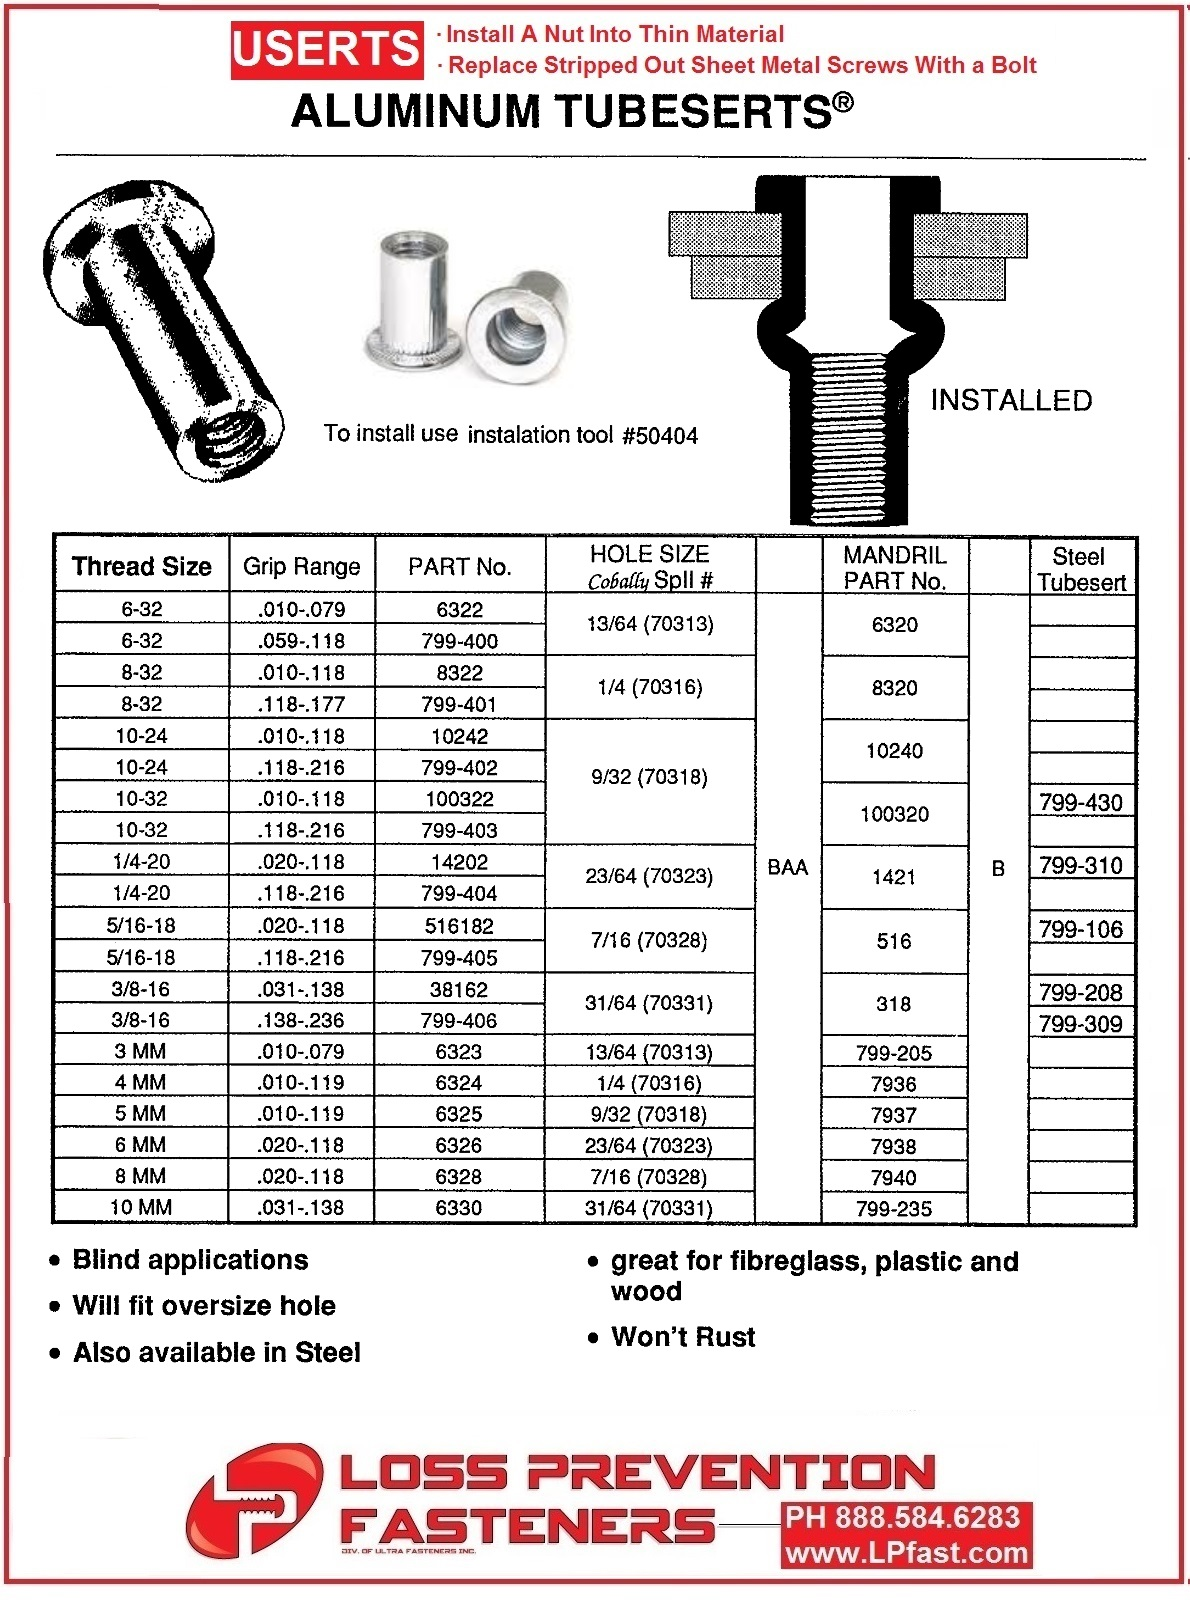 Tubeserts Hole Sizes and Part numbers